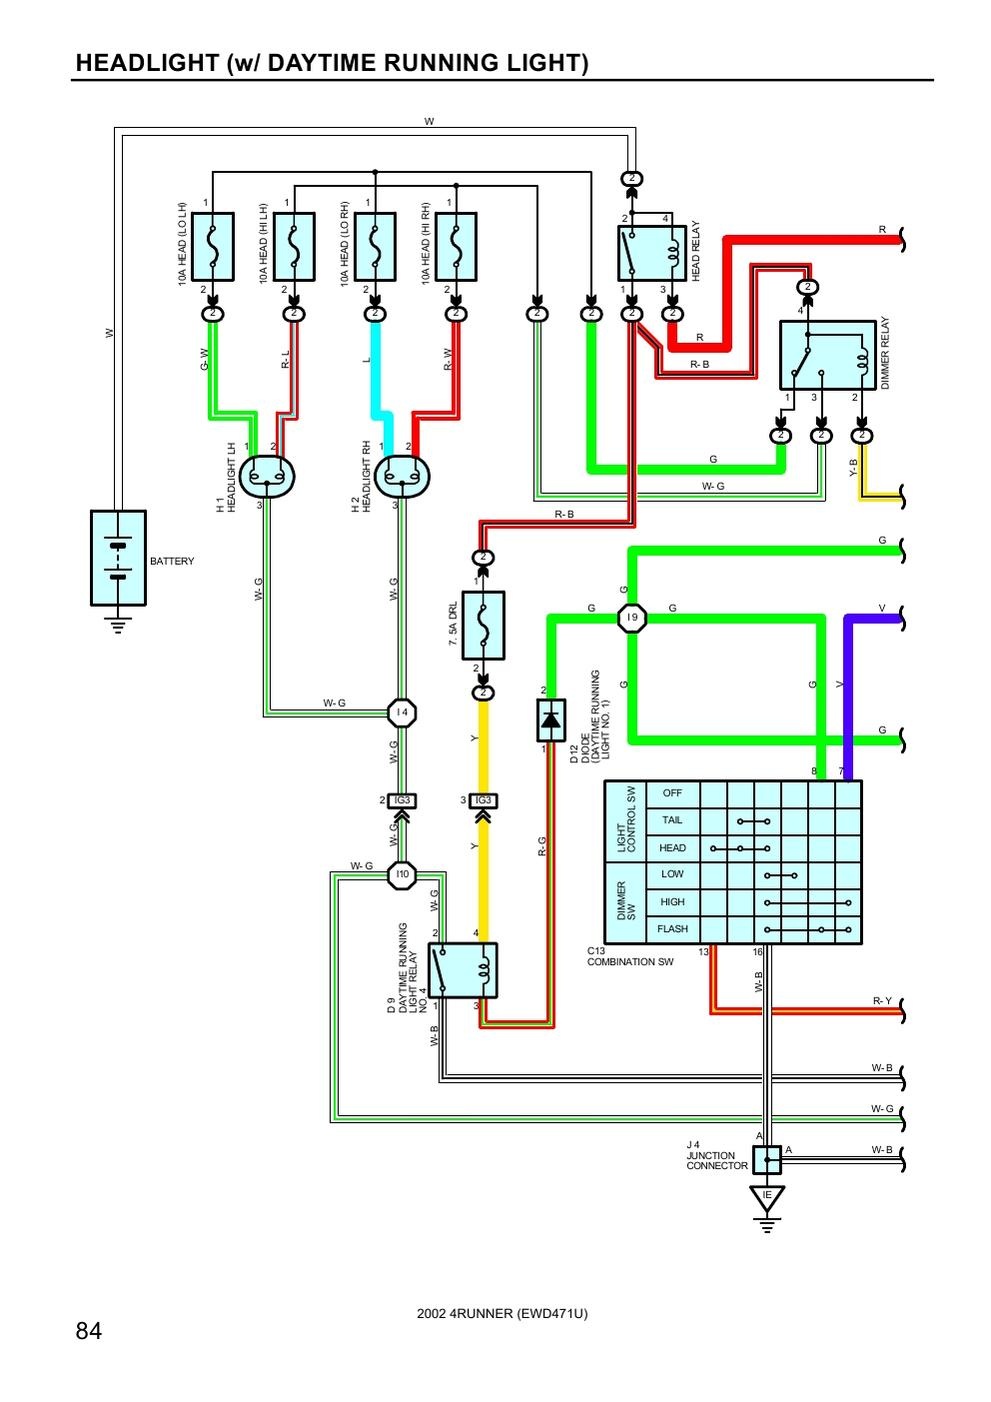 Lexus Sc430 Wiring Diagram together with 2000 Lexus Ls400 Exhaust System Diagram likewise Avic D3 Wiring Diagram in addition Lexus Ls 400 Wiring Diagrams further 1997 Lexus Es350 Wiring Diagram. on lexus ls400 radio wiring diagram on is300